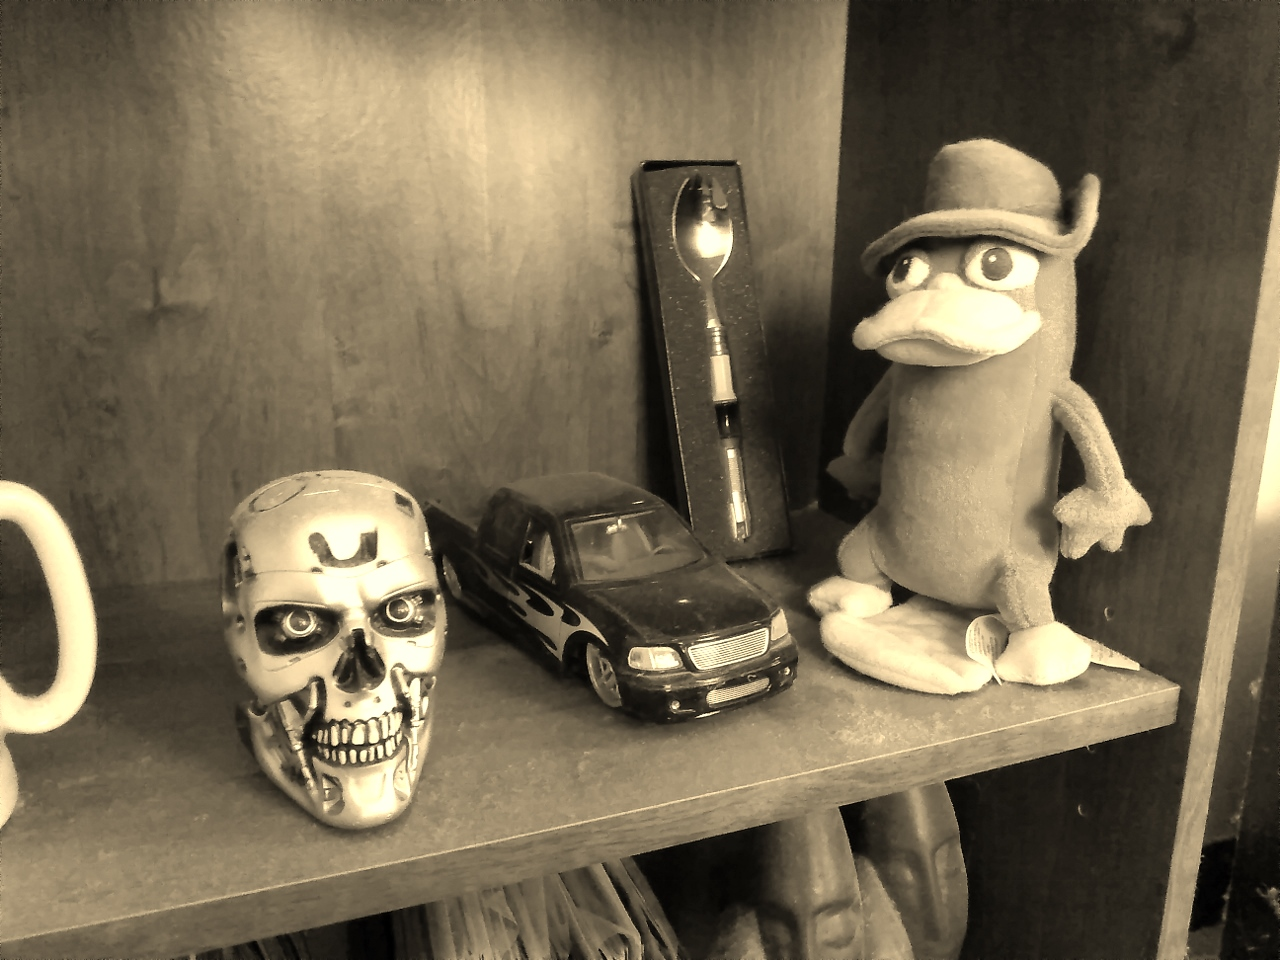 Geeky Toys in Sepia 1-6-2018 9-37-27 AM